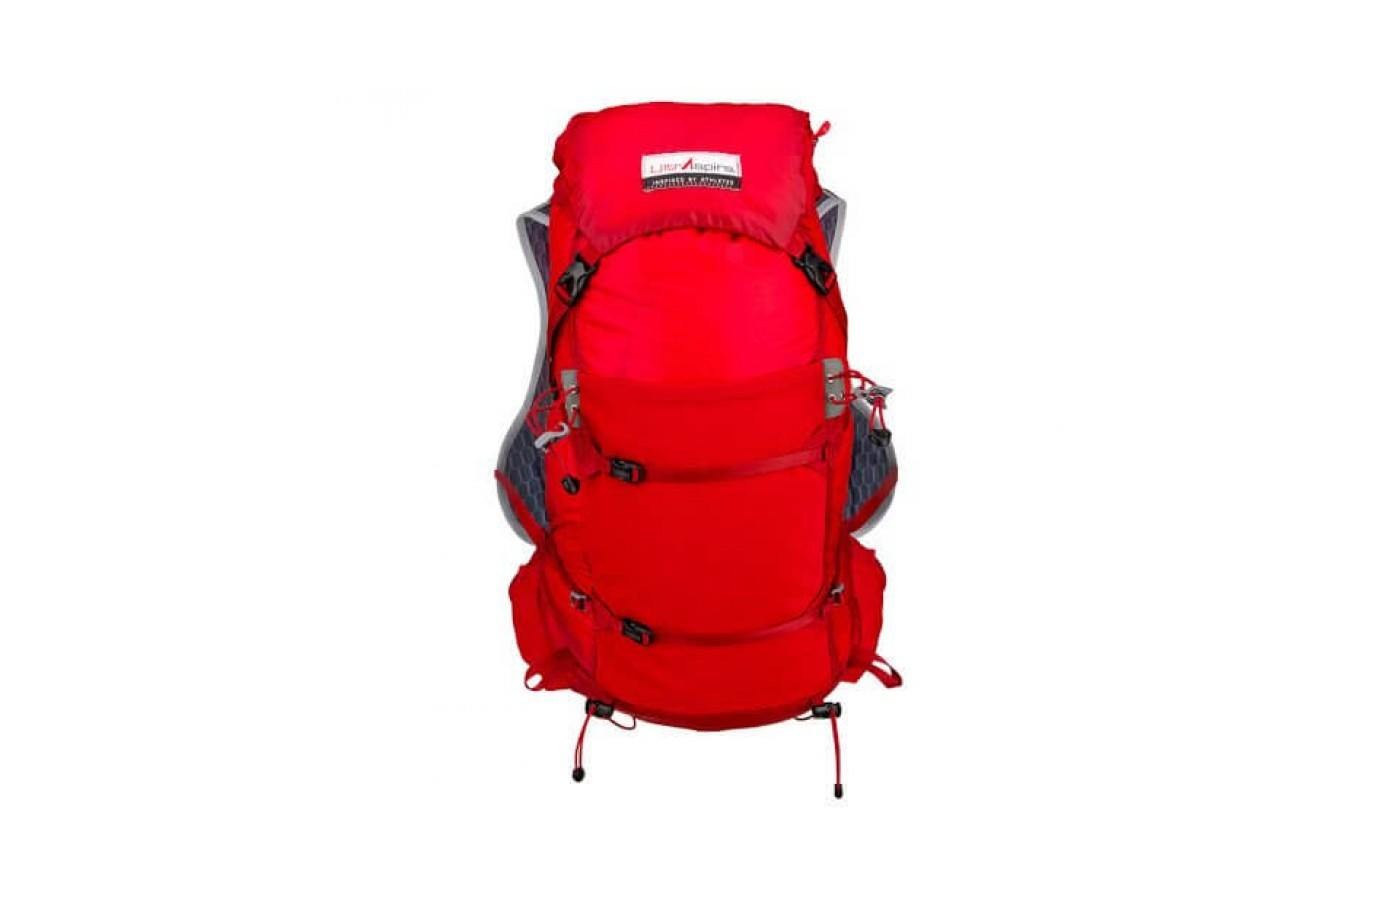 3f64bae049be The UltrAspire Epic Hydration Pack comes with a rain fly cover ...